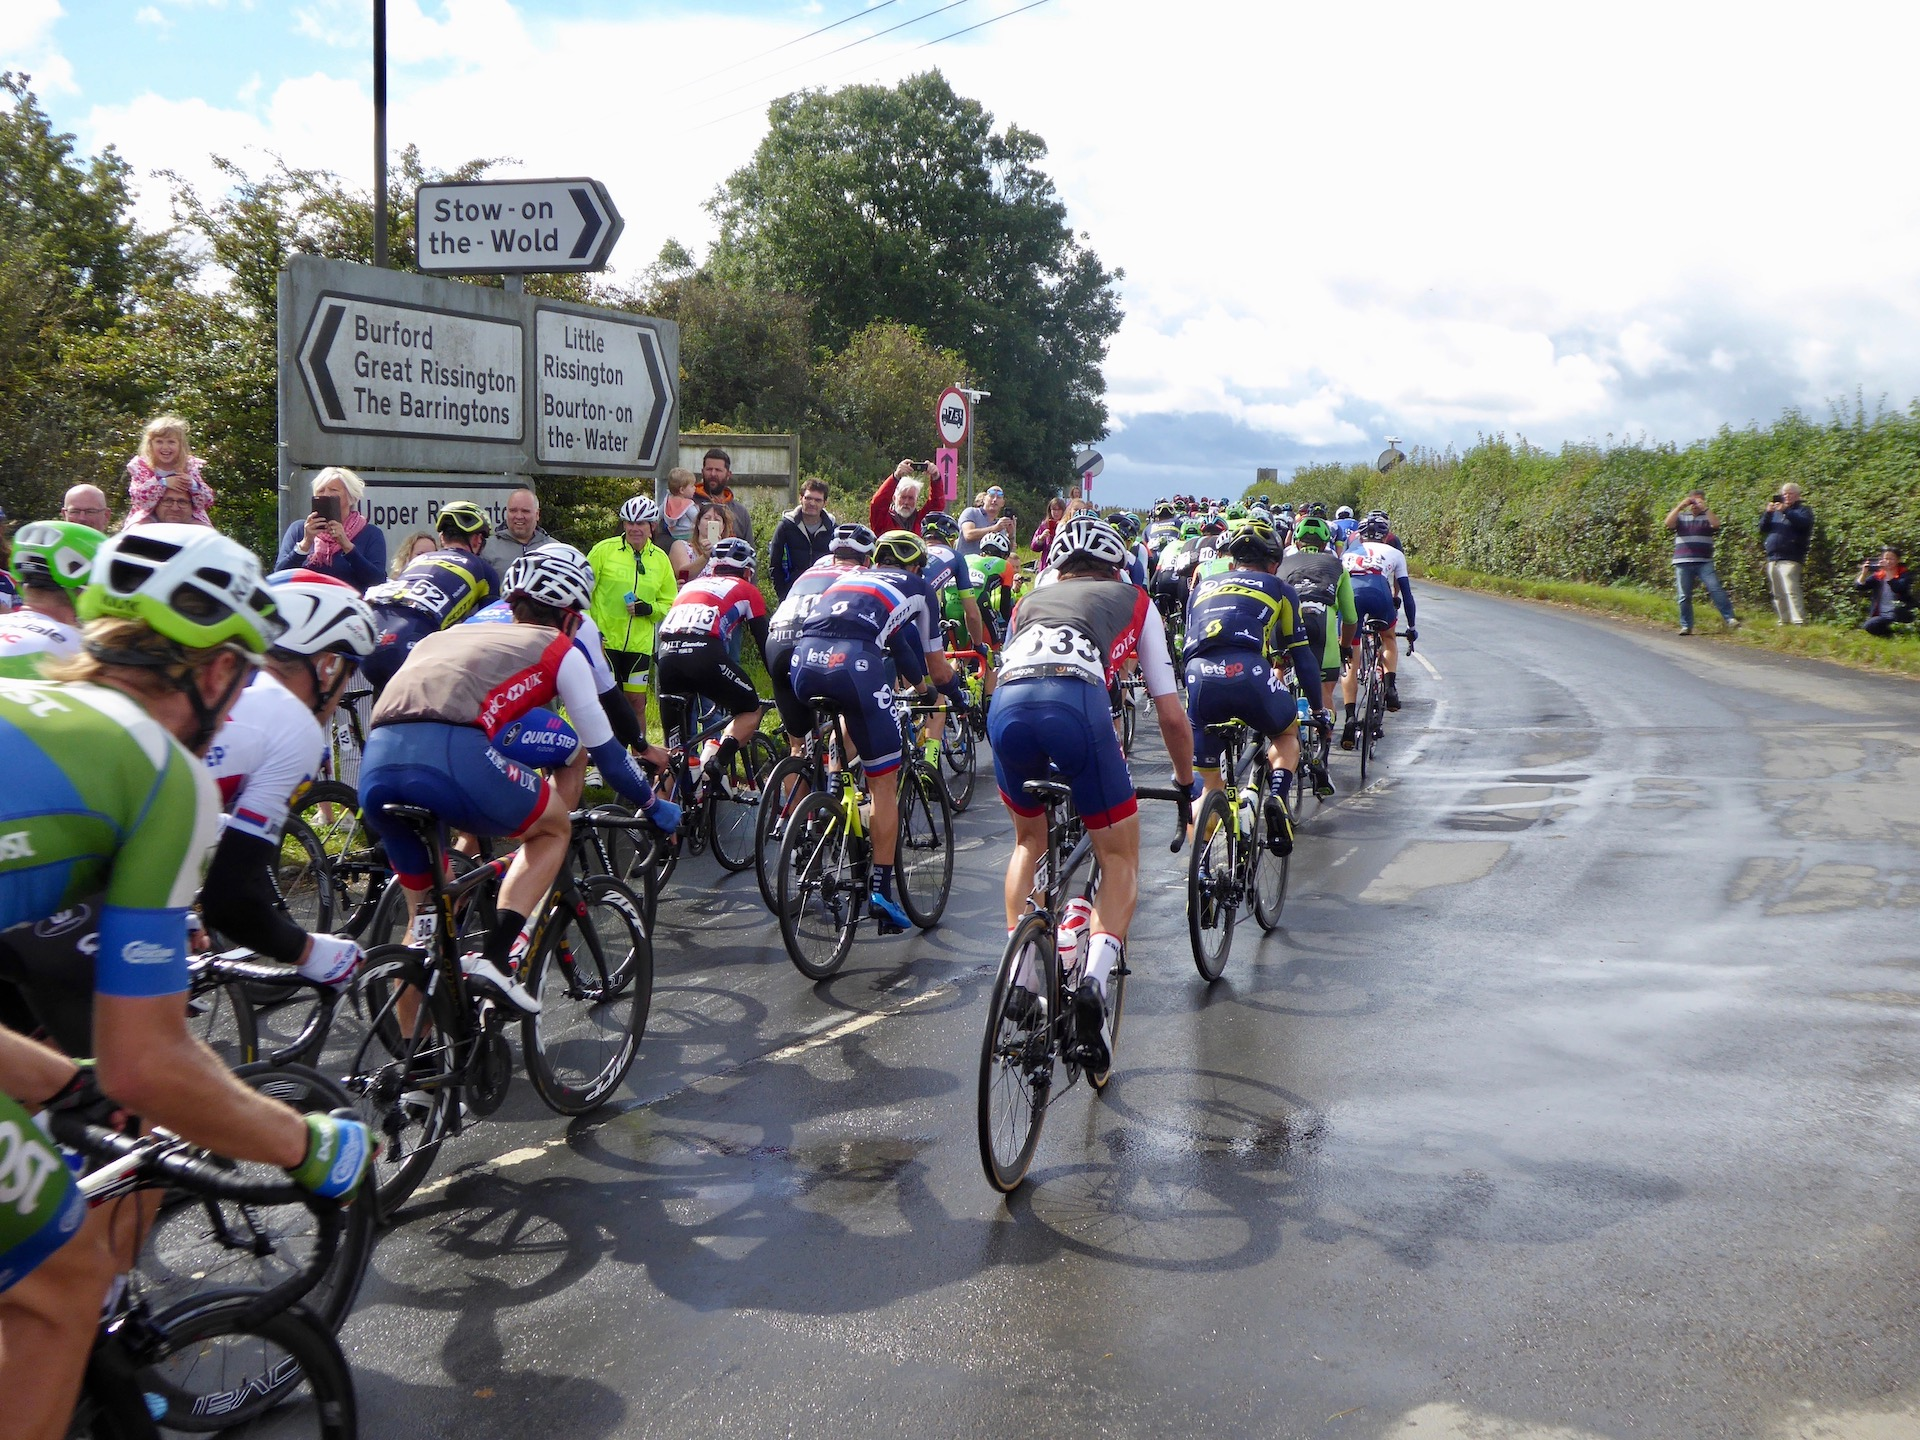 9 September 2017 – Tour of Britain